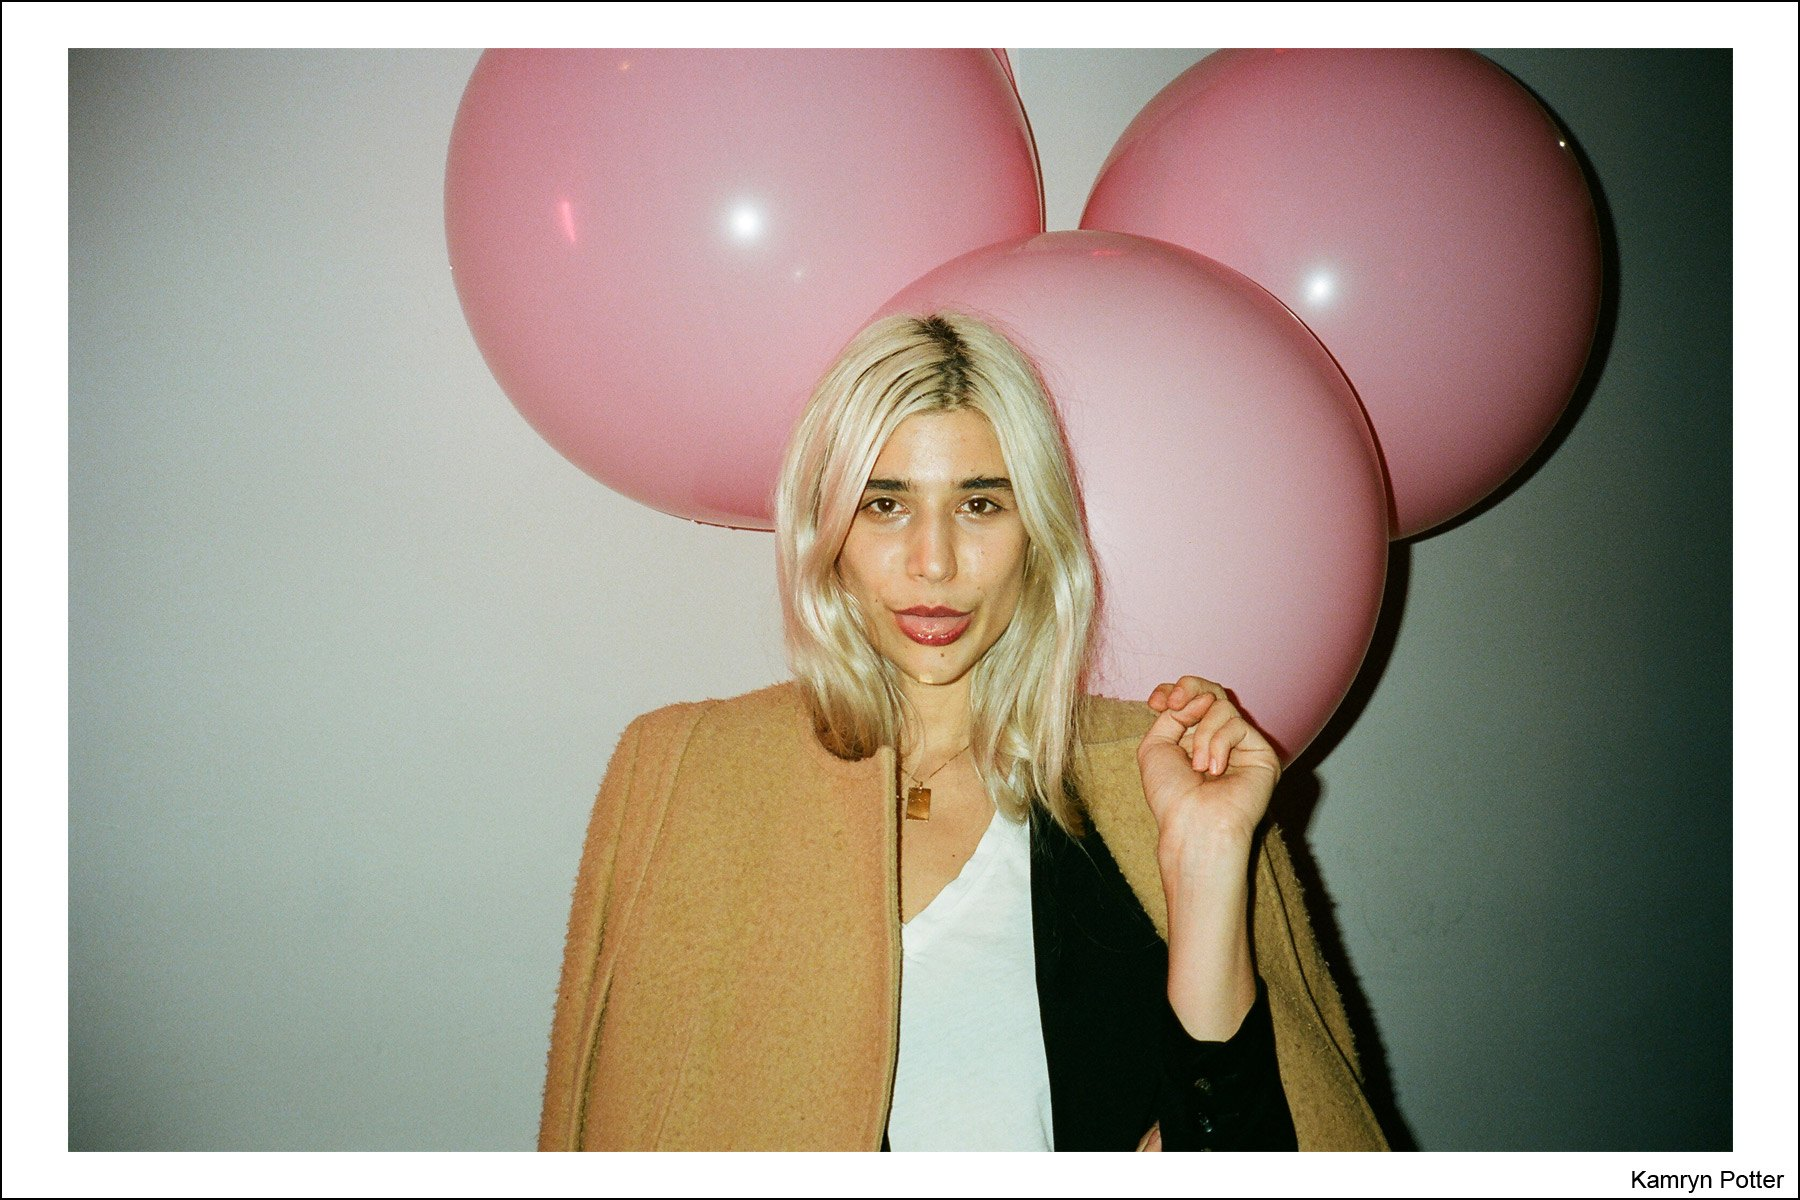 Blonde beauty Kamryn Potter, photographed by Kristin Gallegos. Ponyboy magazine NY.